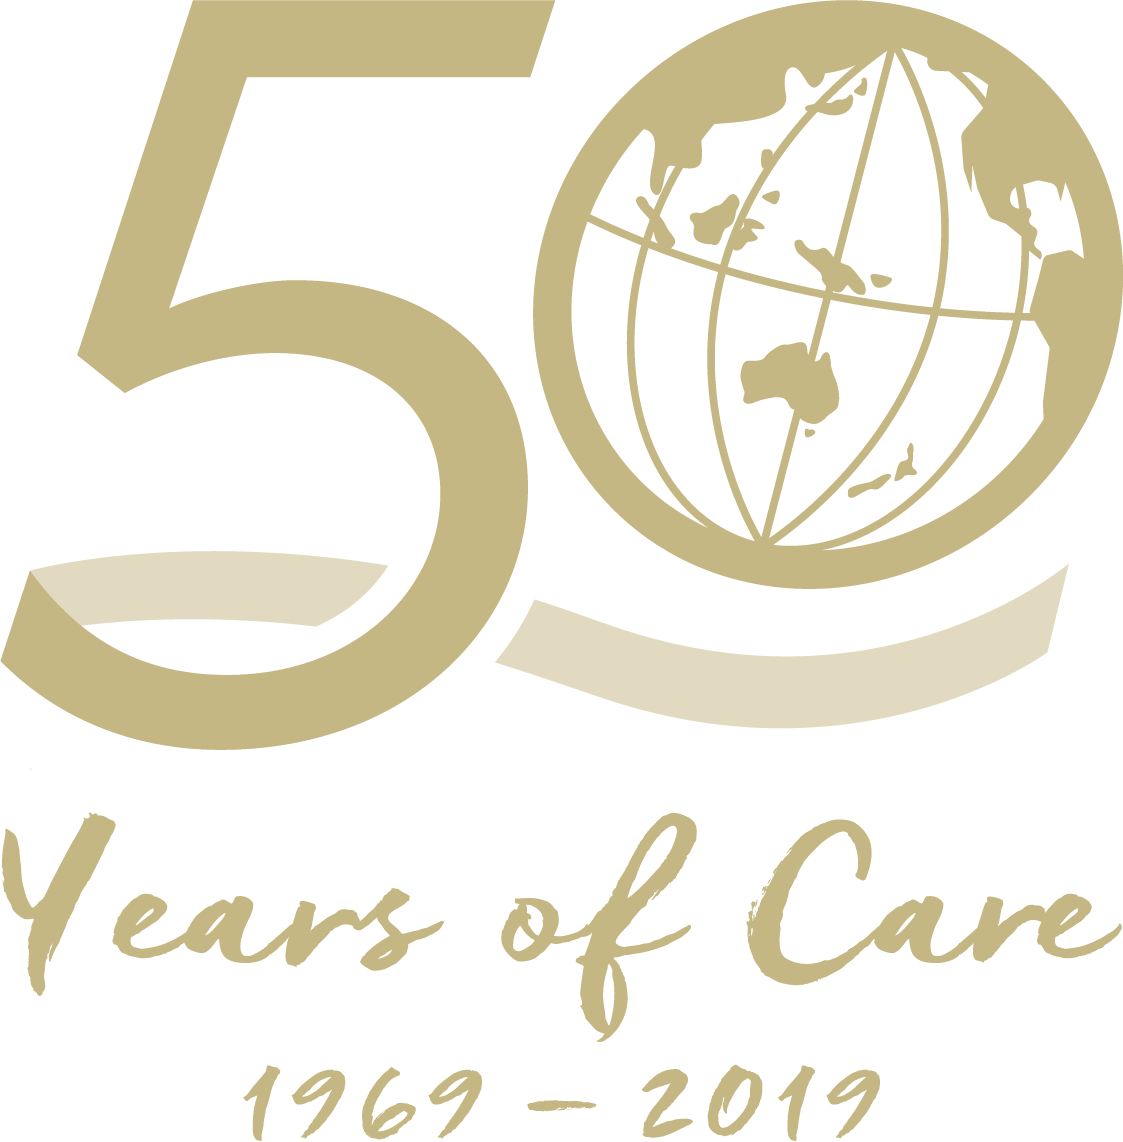 Fisher & Paykel Healthcare | 케어 50주년 1969 - 2019